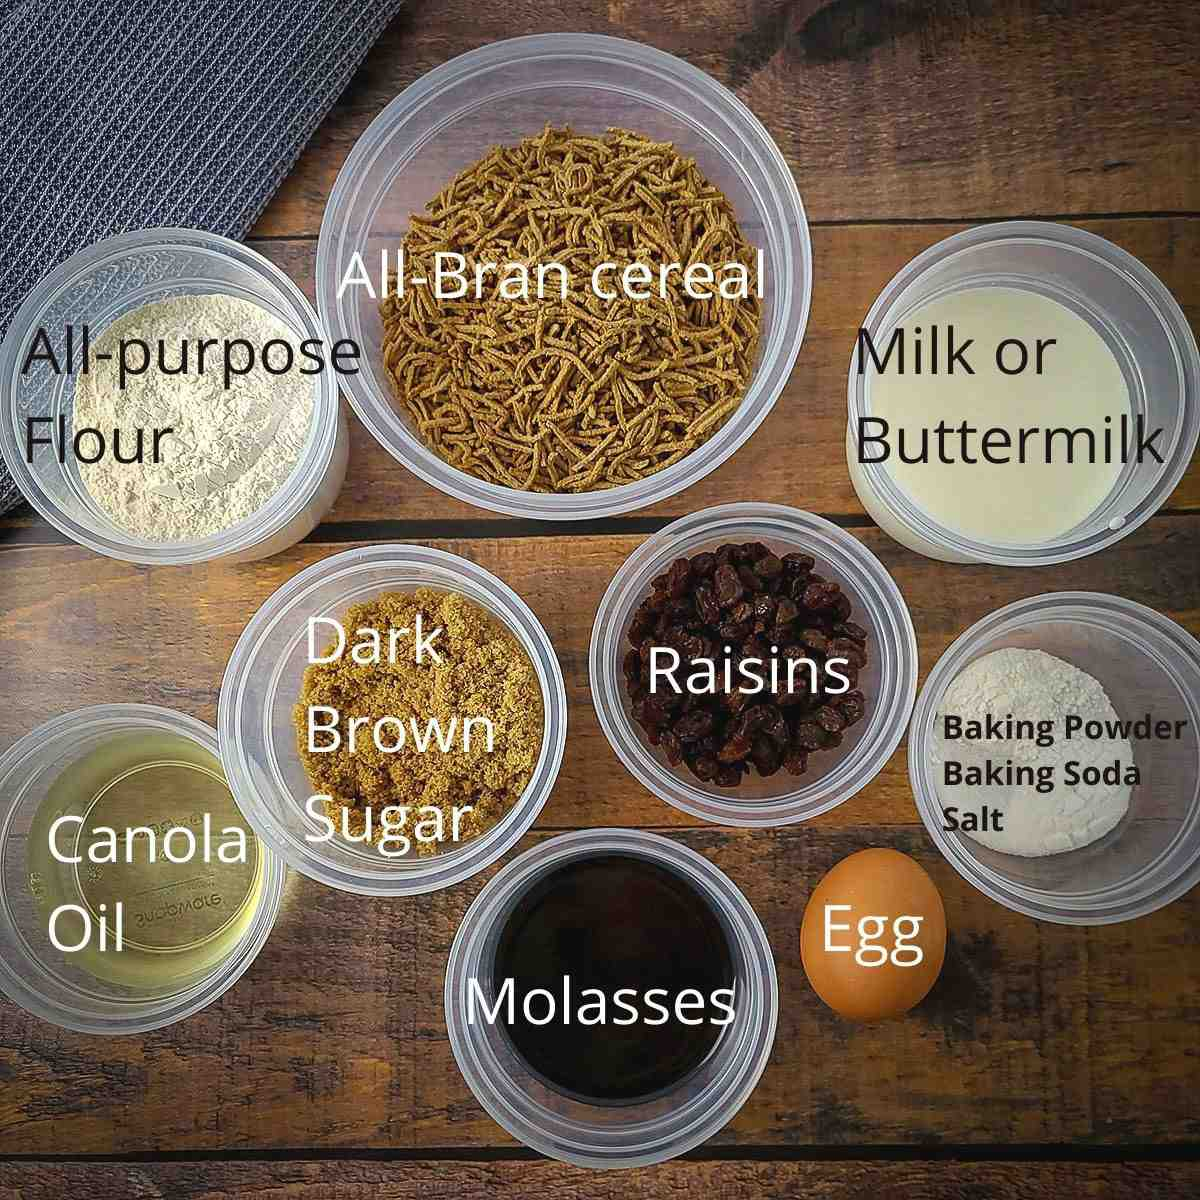 ingredients measured out for bran muffins